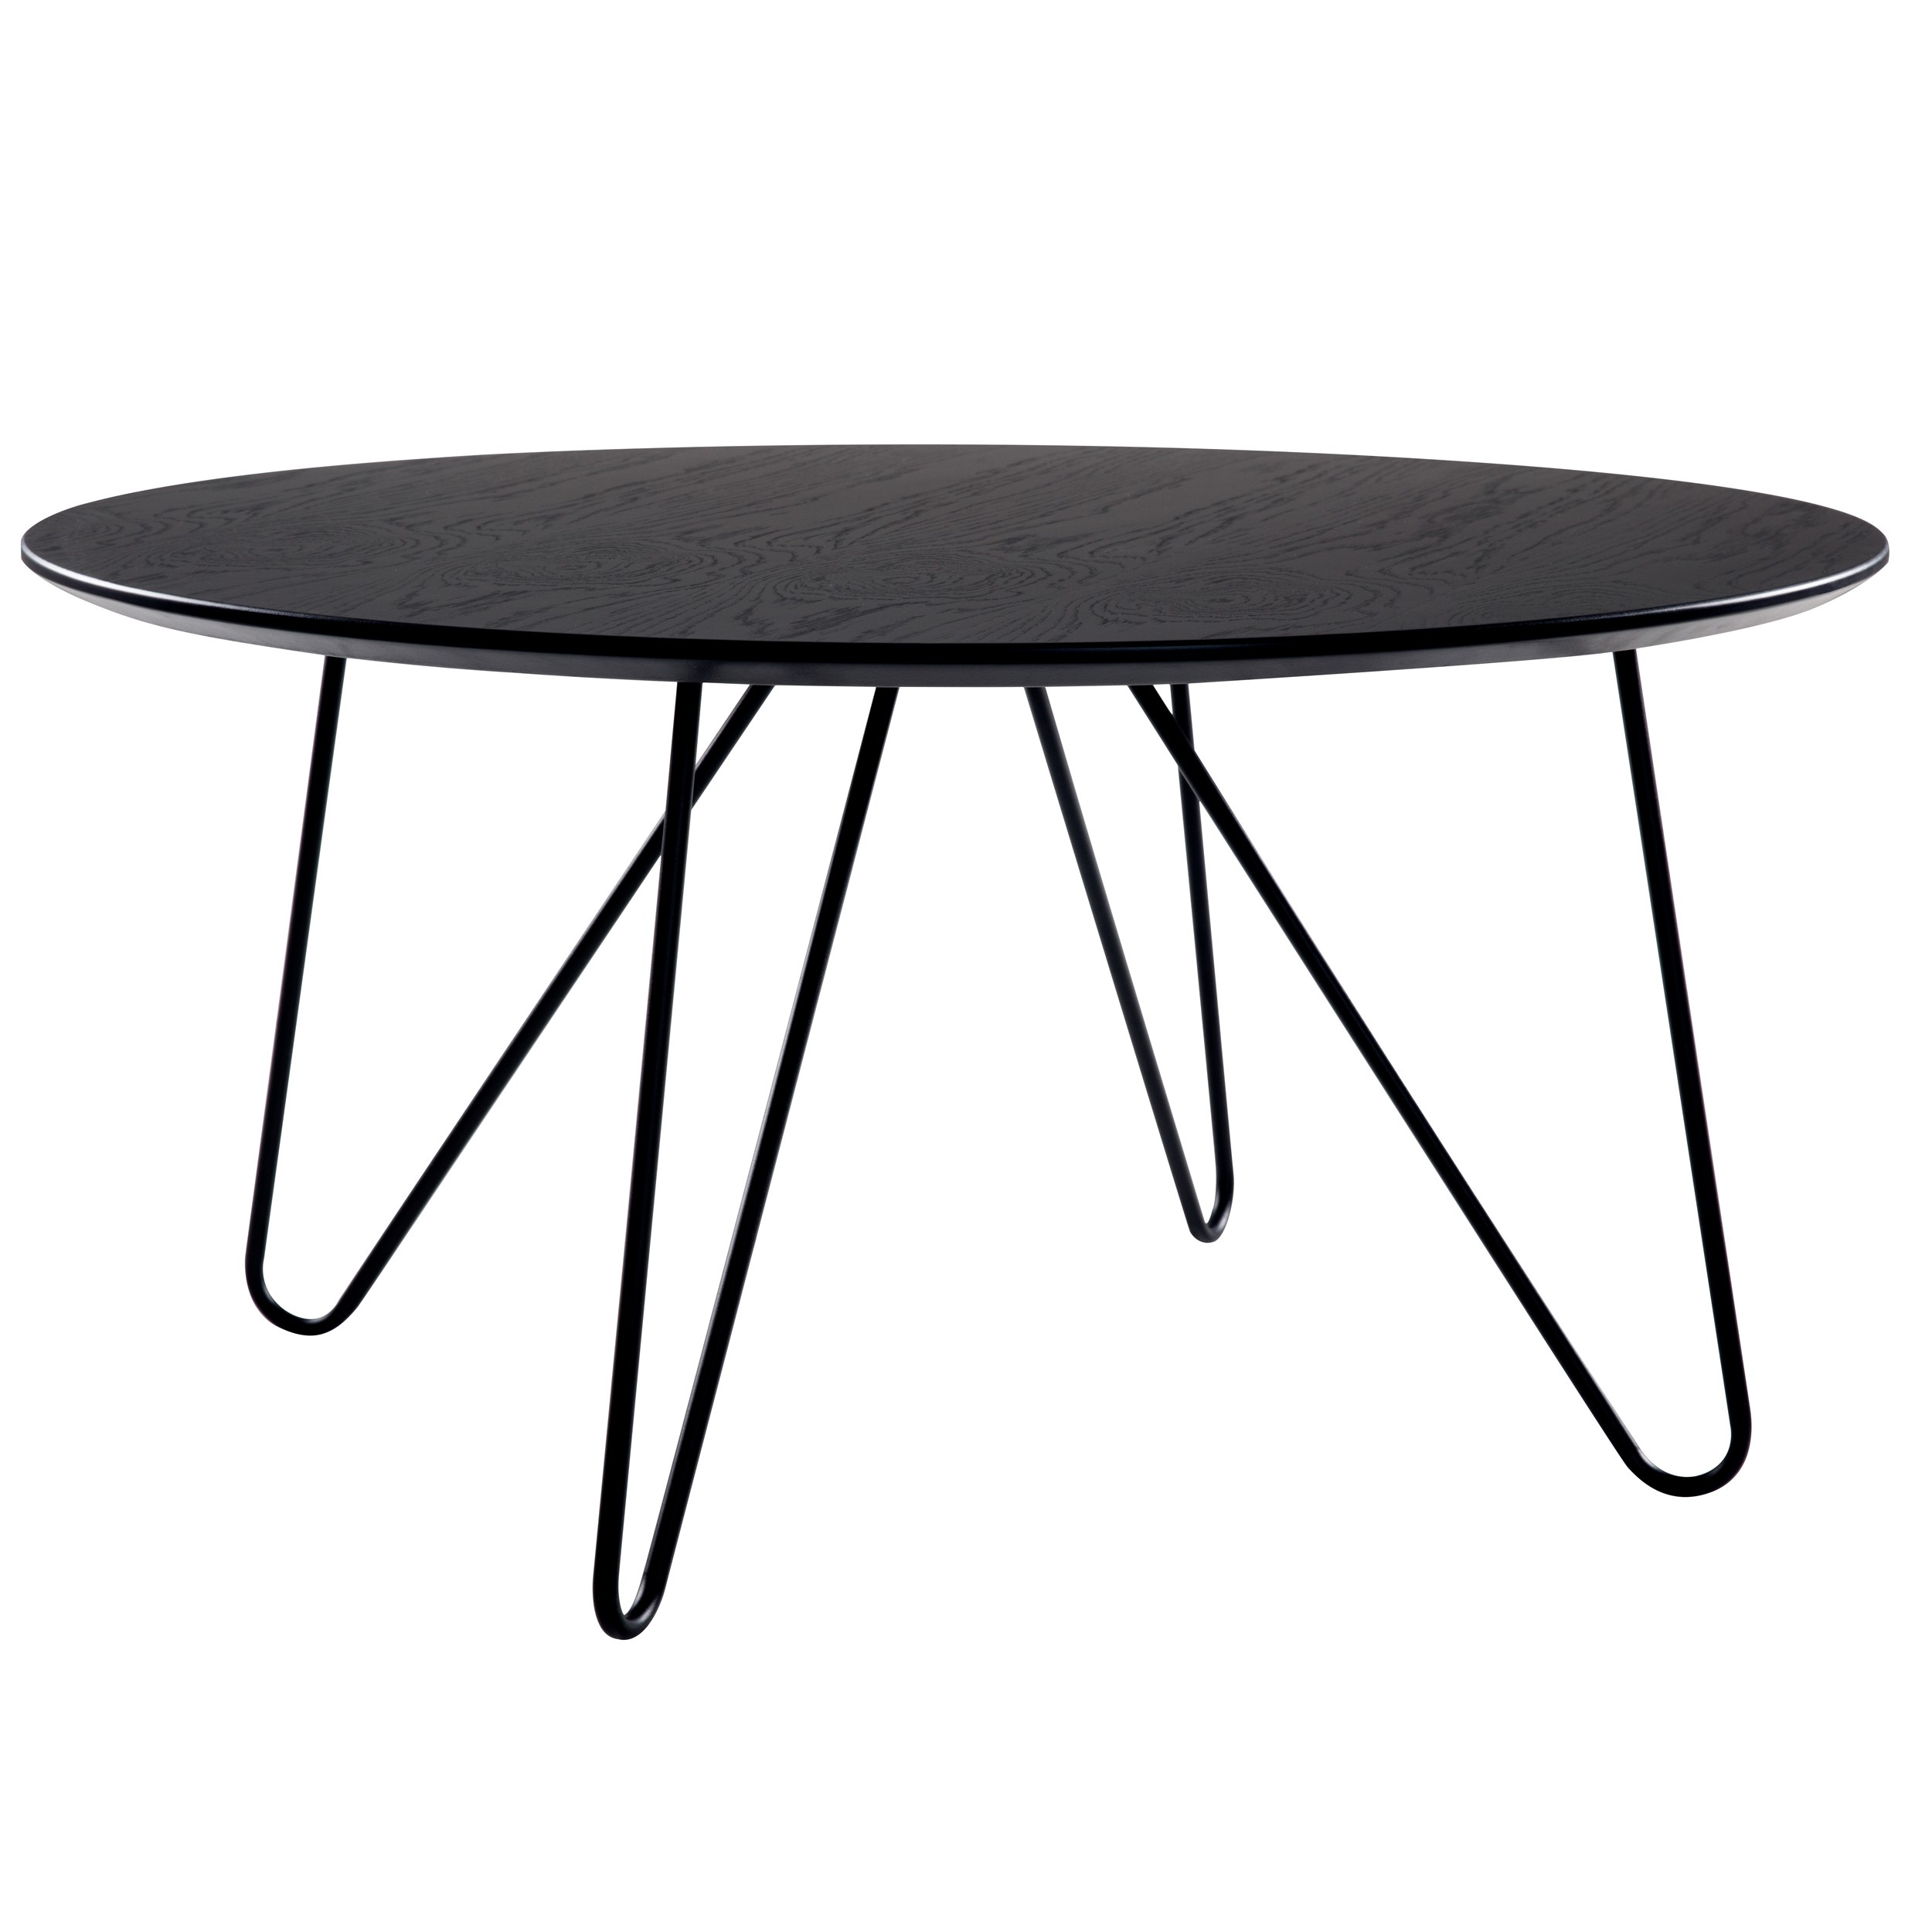 table basse ronde alta noire commandez nos tables basses rondes alta noires rdv d co. Black Bedroom Furniture Sets. Home Design Ideas